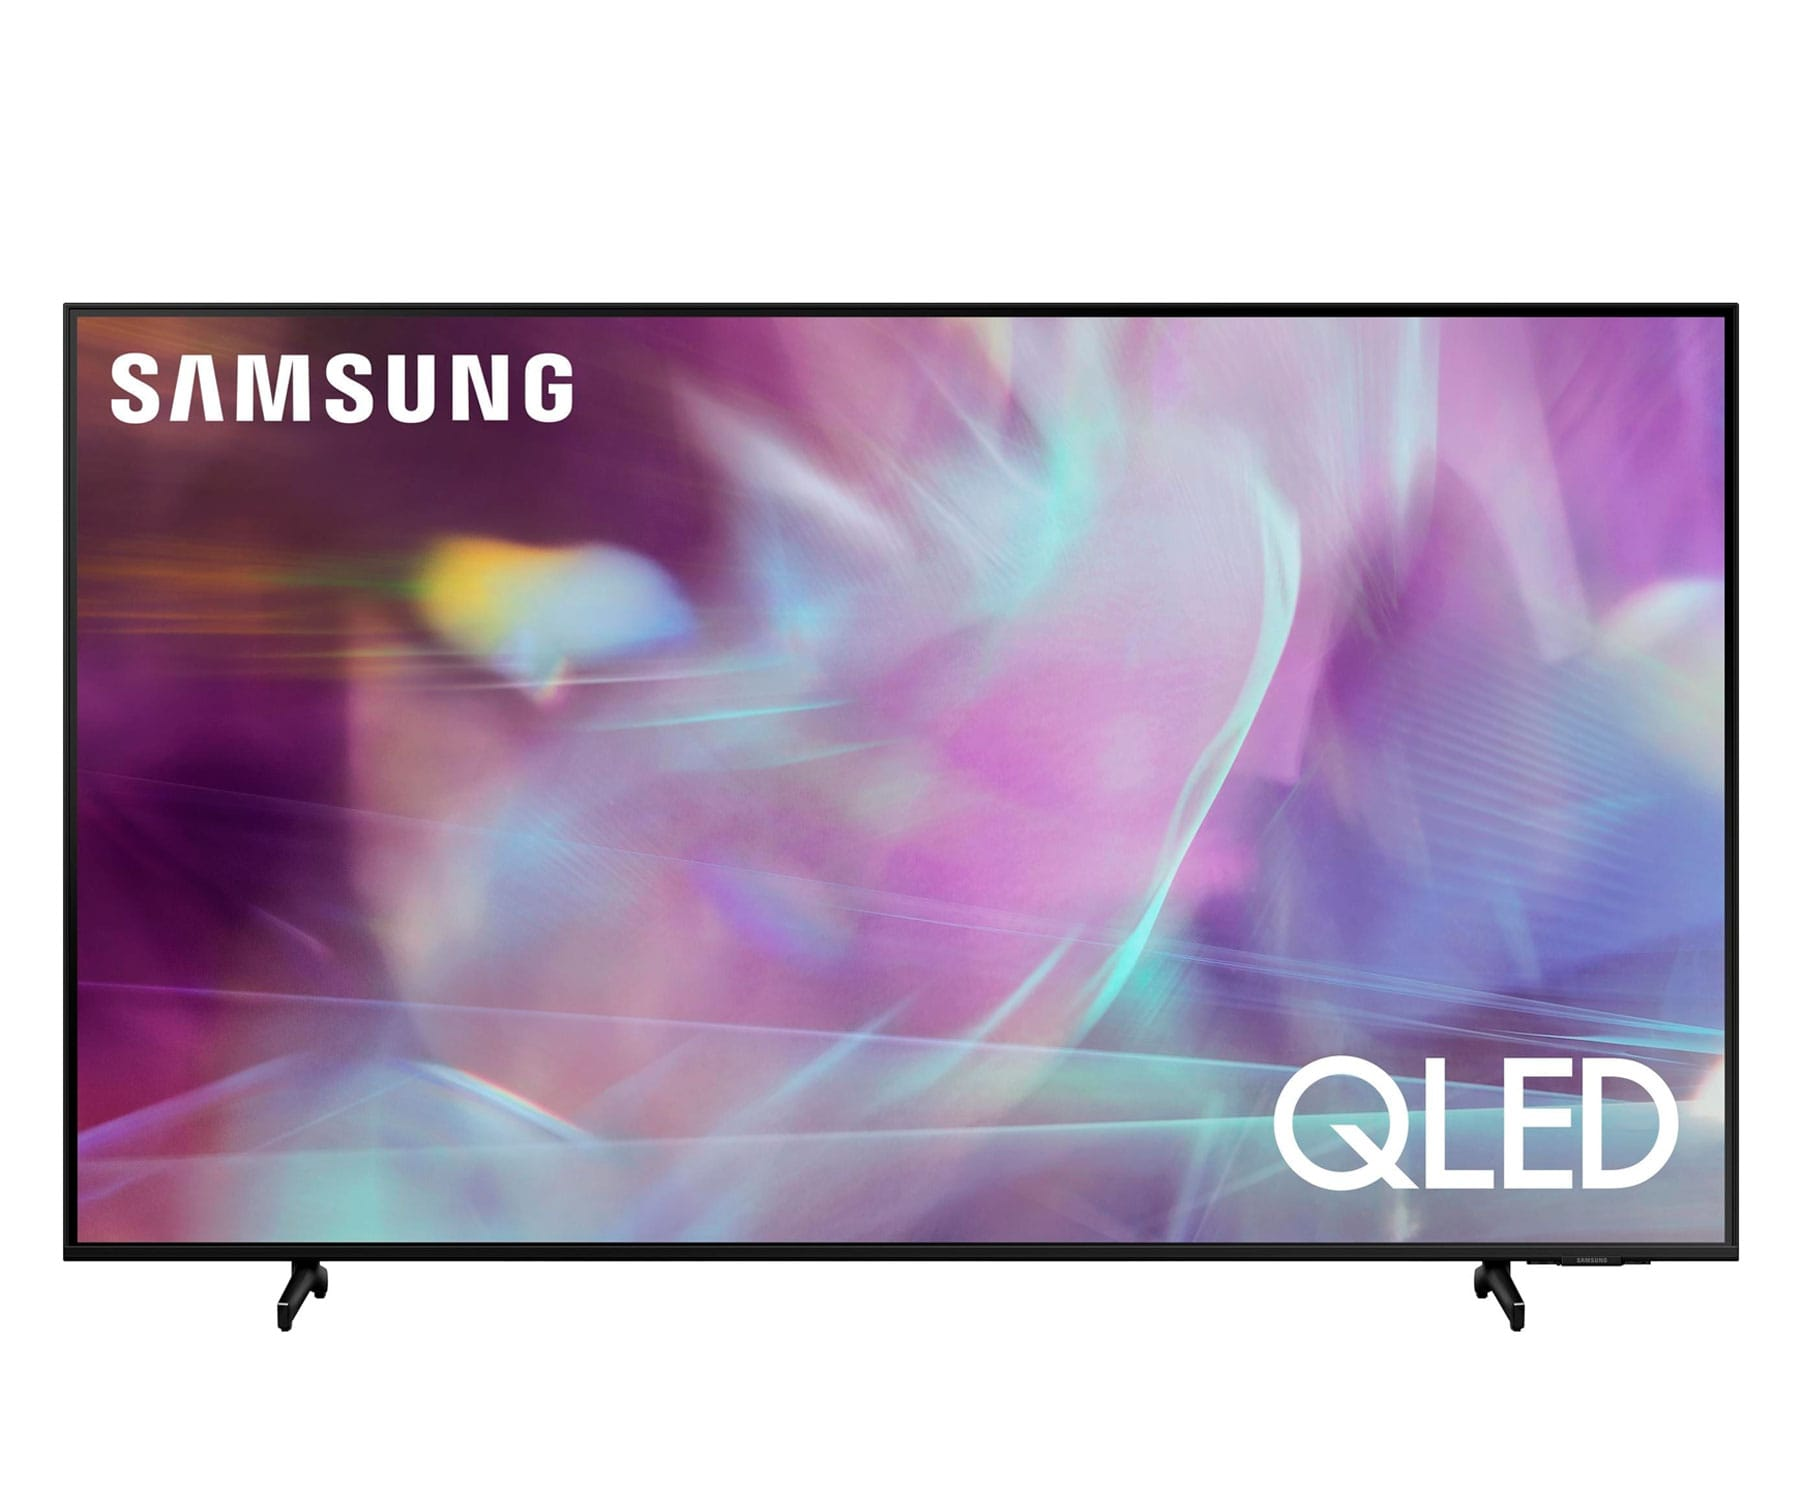 SAMSUNG QE55Q60AAUXXC NEGRO TELEVISOR 55'' QLED 4K SMART TV WIFI BLUETOOTH AMBIENT MODE